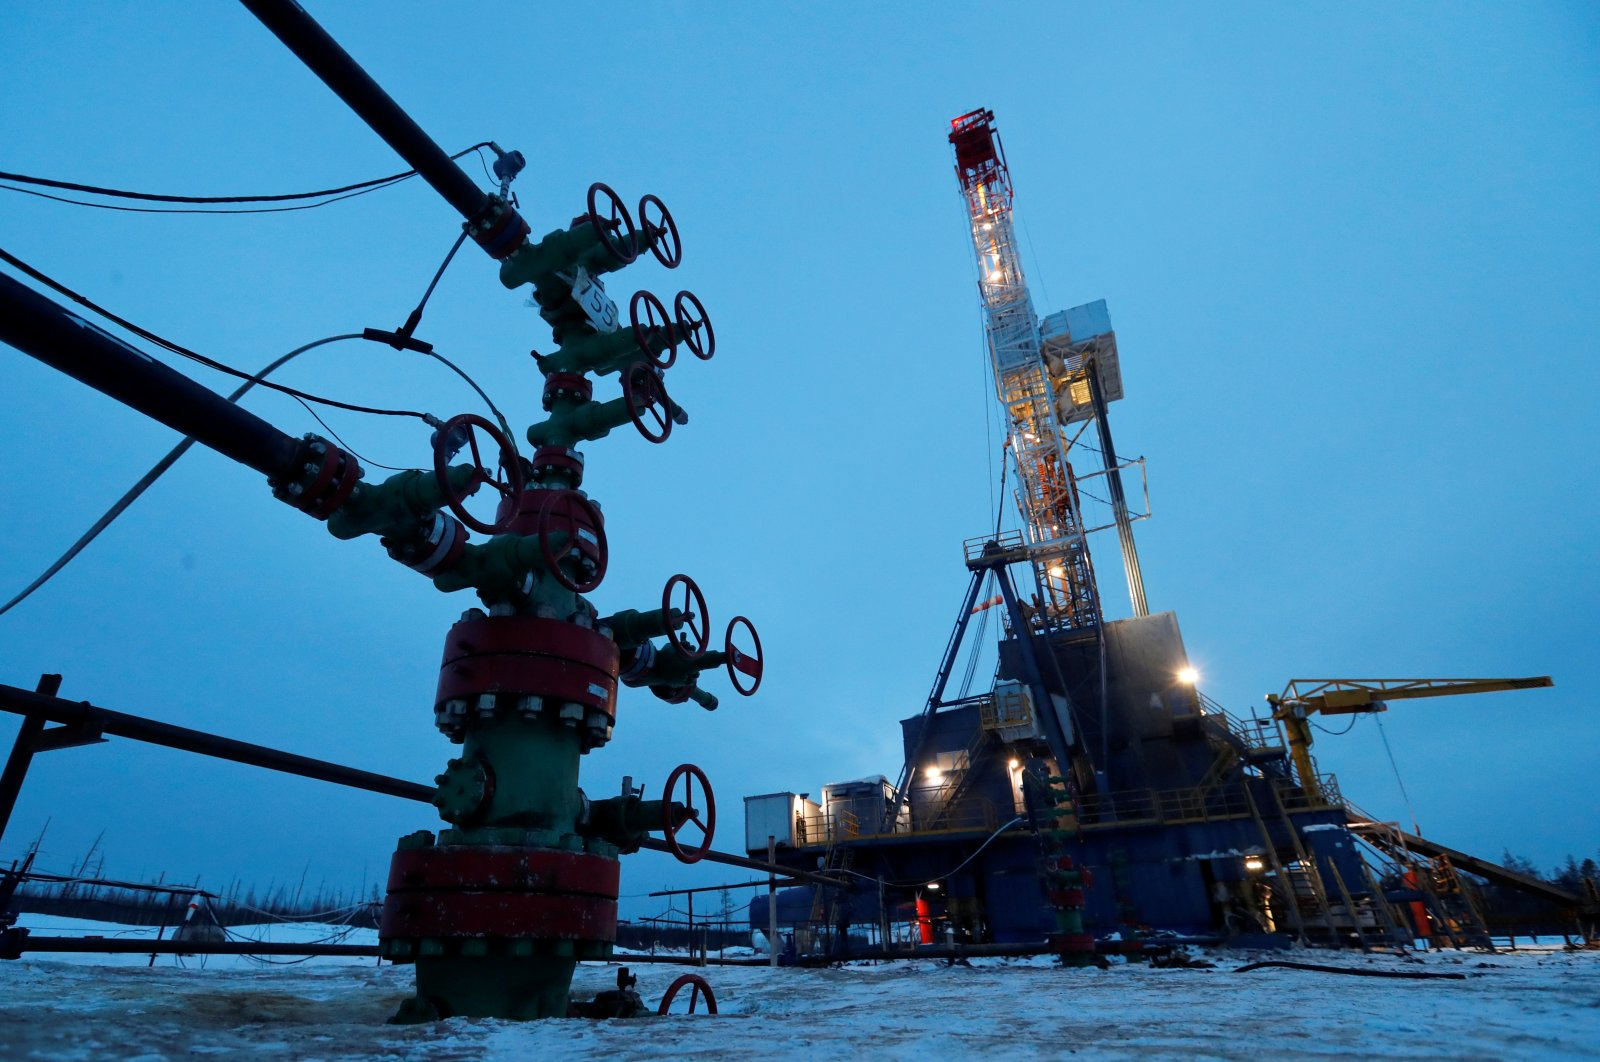 A view shows a well head and a drilling rig in the Yarakta Oil Field, owned by Irkutsk Oil Company (INK), in Irkutsk Region, Russia, March 11, 2019. (Reuters Photo)